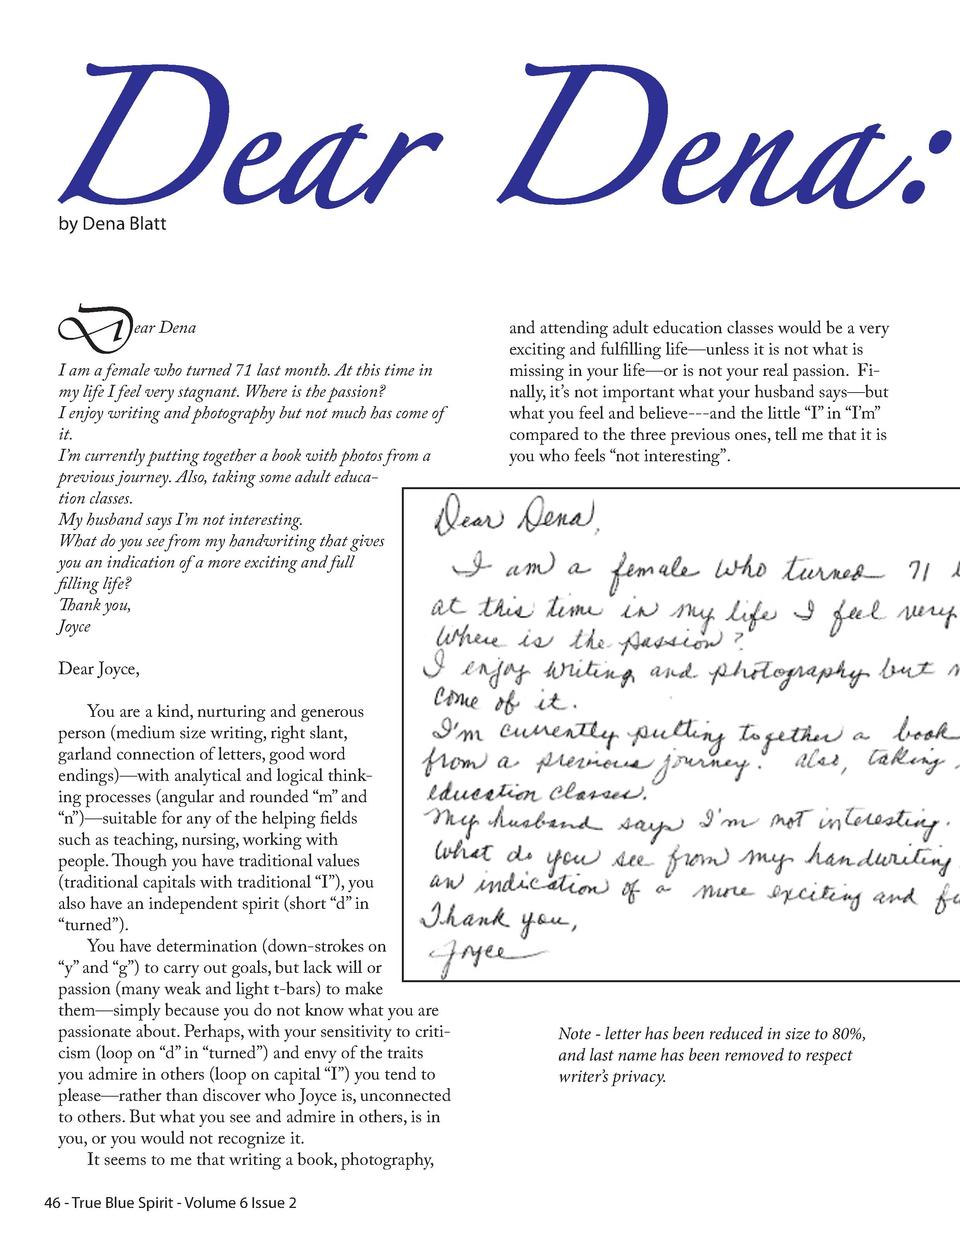 Dear Dena  by Dena Blatt  D  ear Dena  I am a female who turned 71 last month. At this time in my life I feel very stagnan...